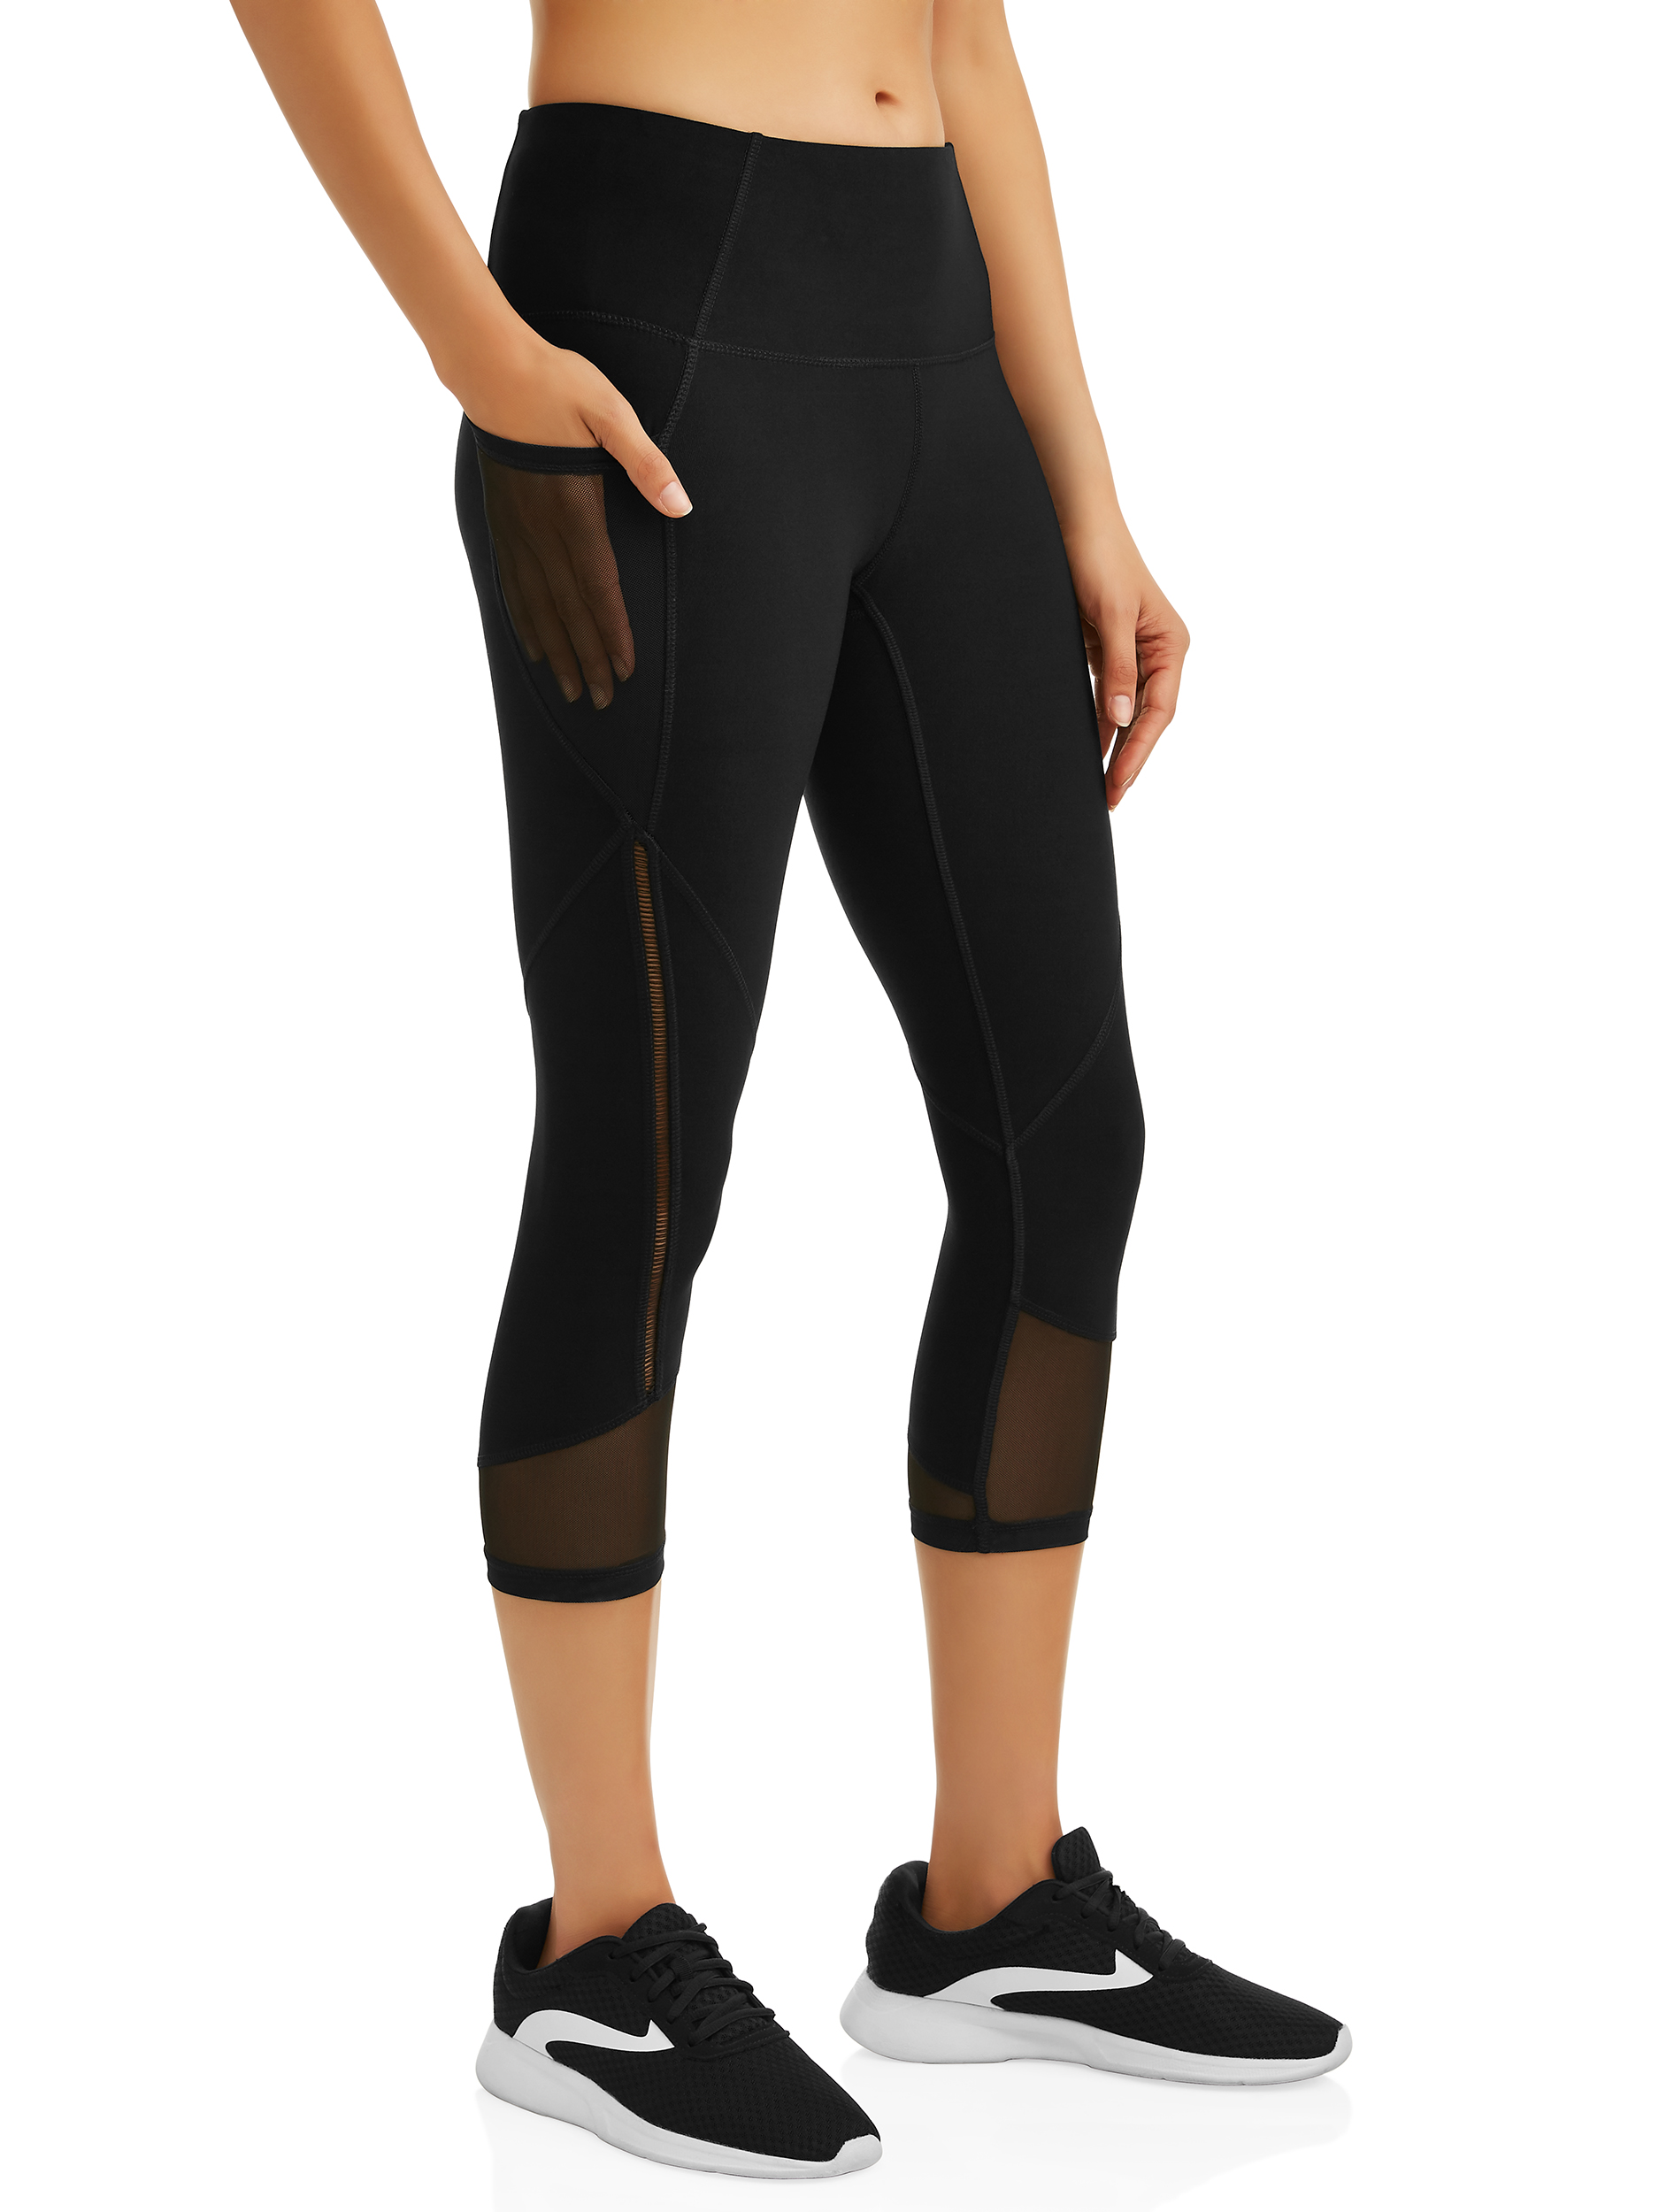 Women's Active 21 Capri with Novelty Trim